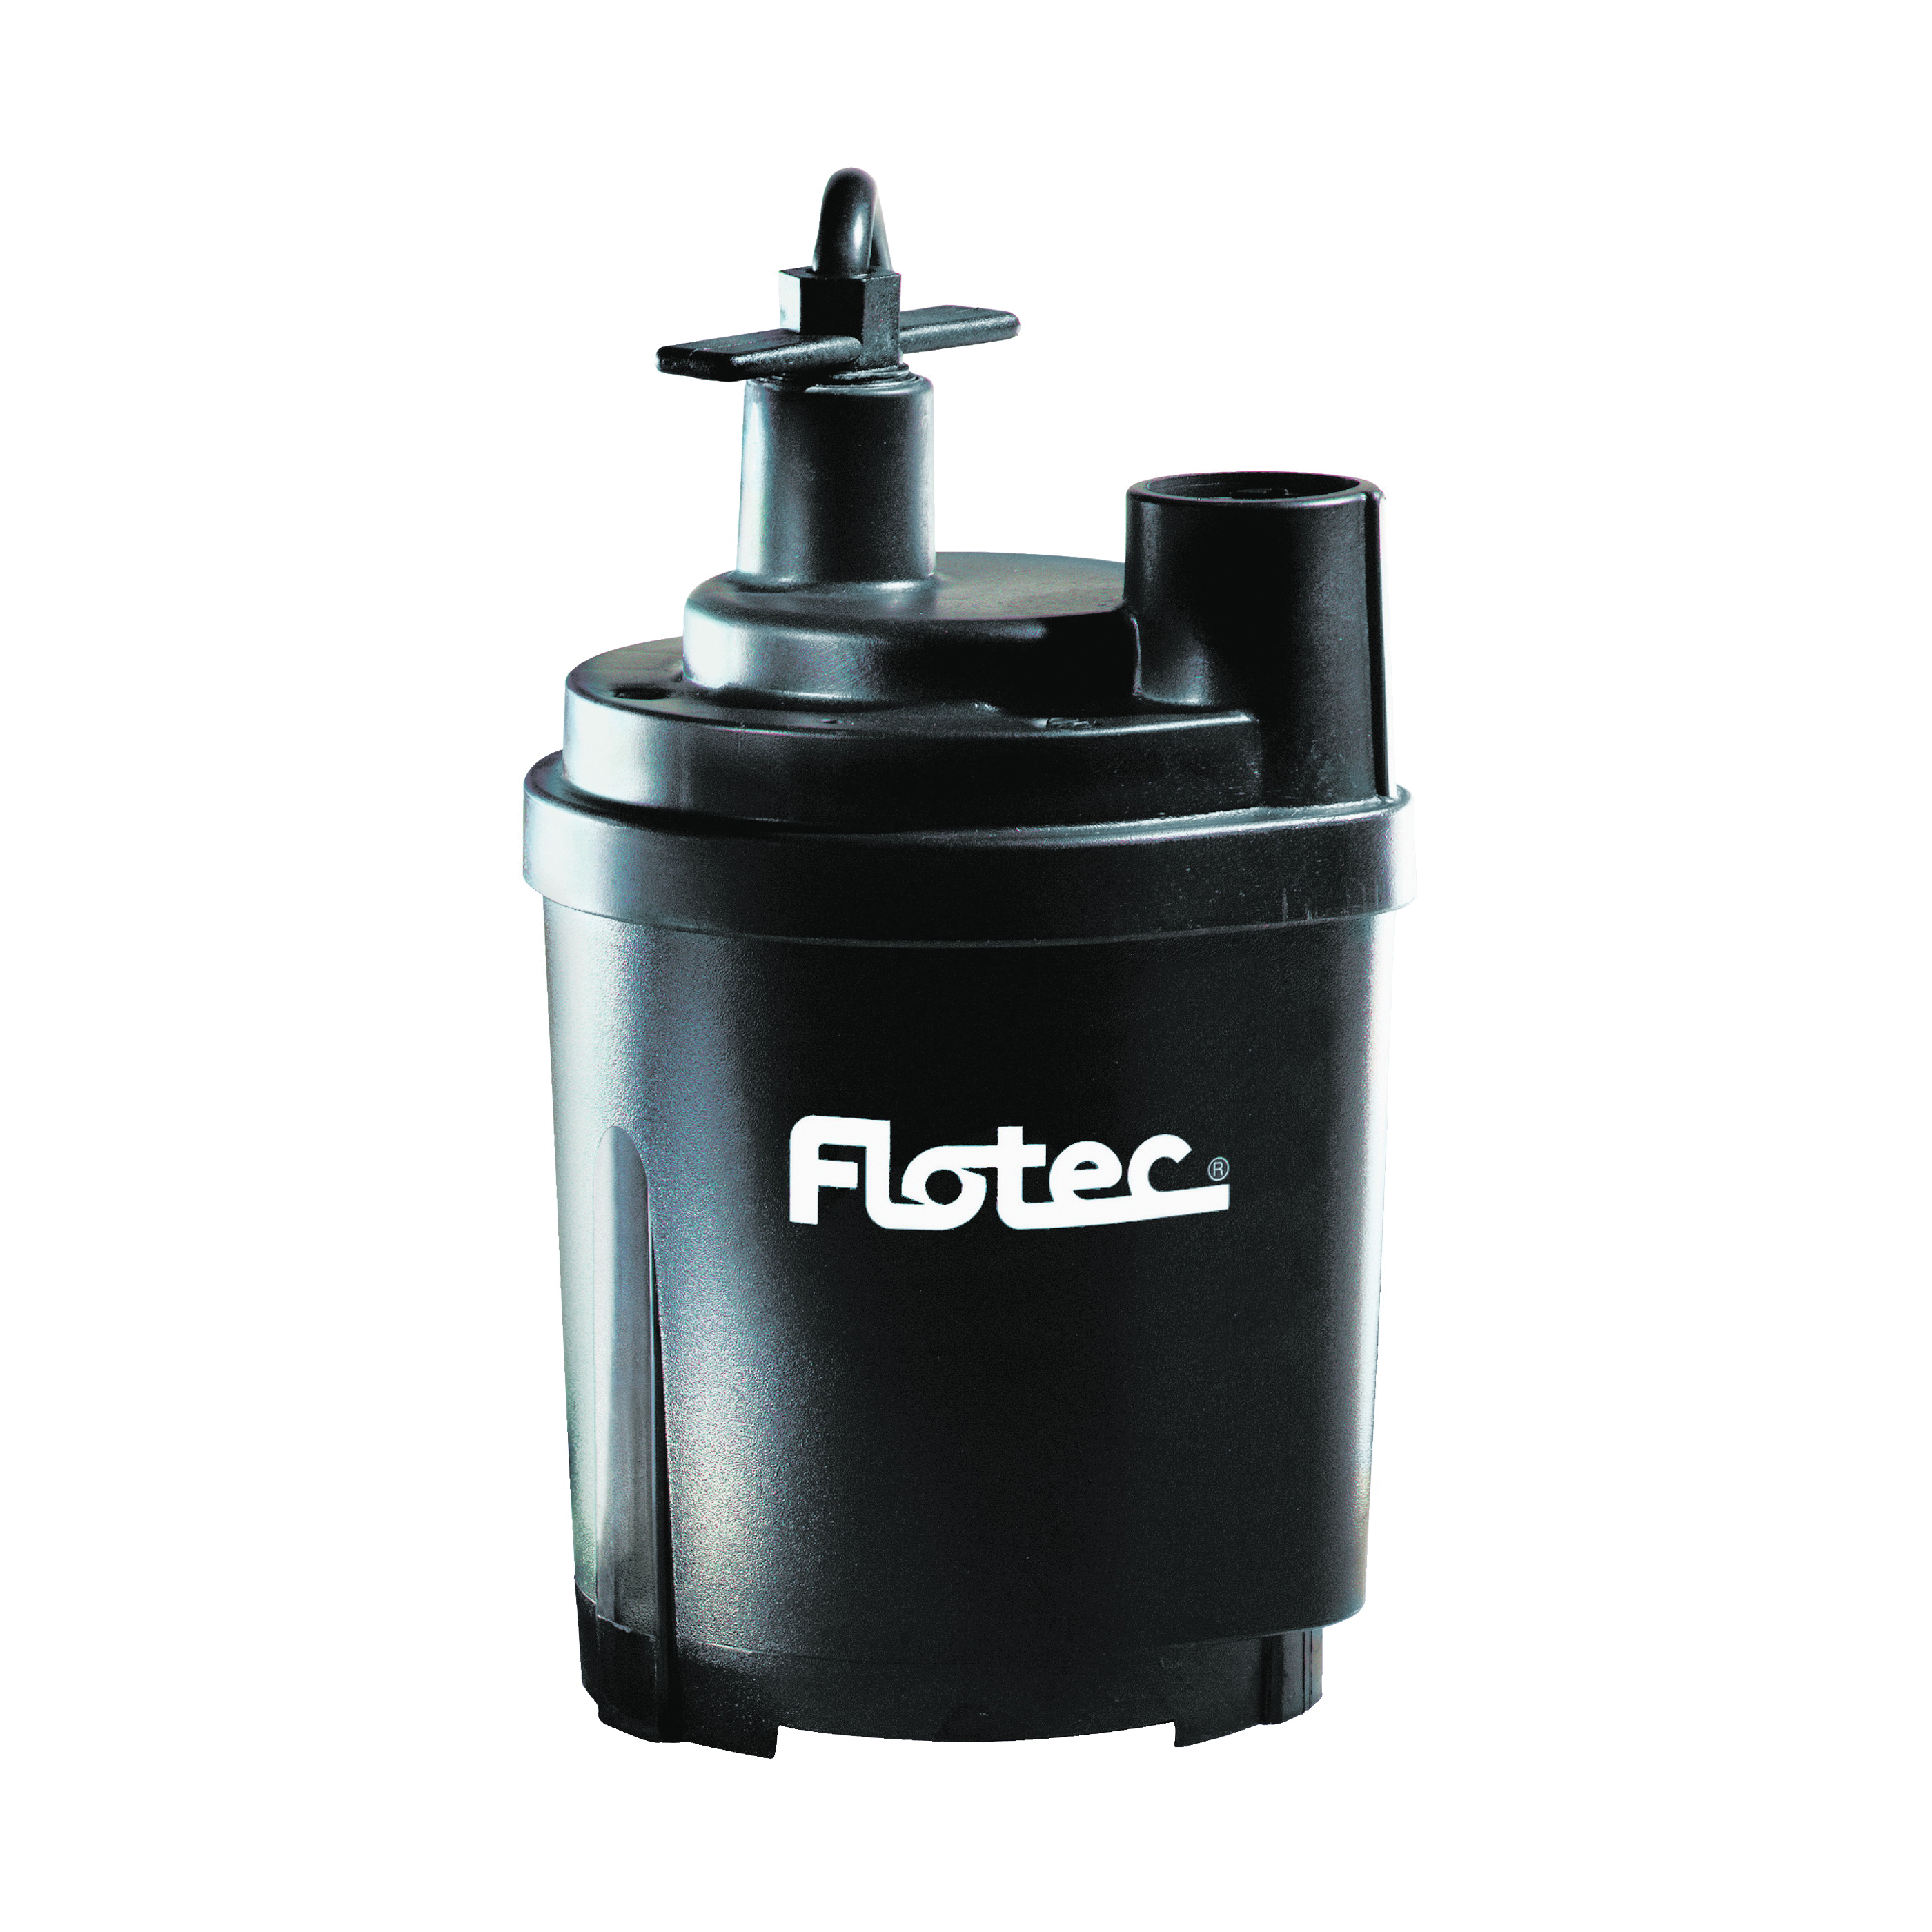 Picture of Sta-Rite Flotec Tempest FP0S1300X Utility Pump, 115 V, 0.166 hp, 1 in Outlet, 1470 gph, Thermoplastic